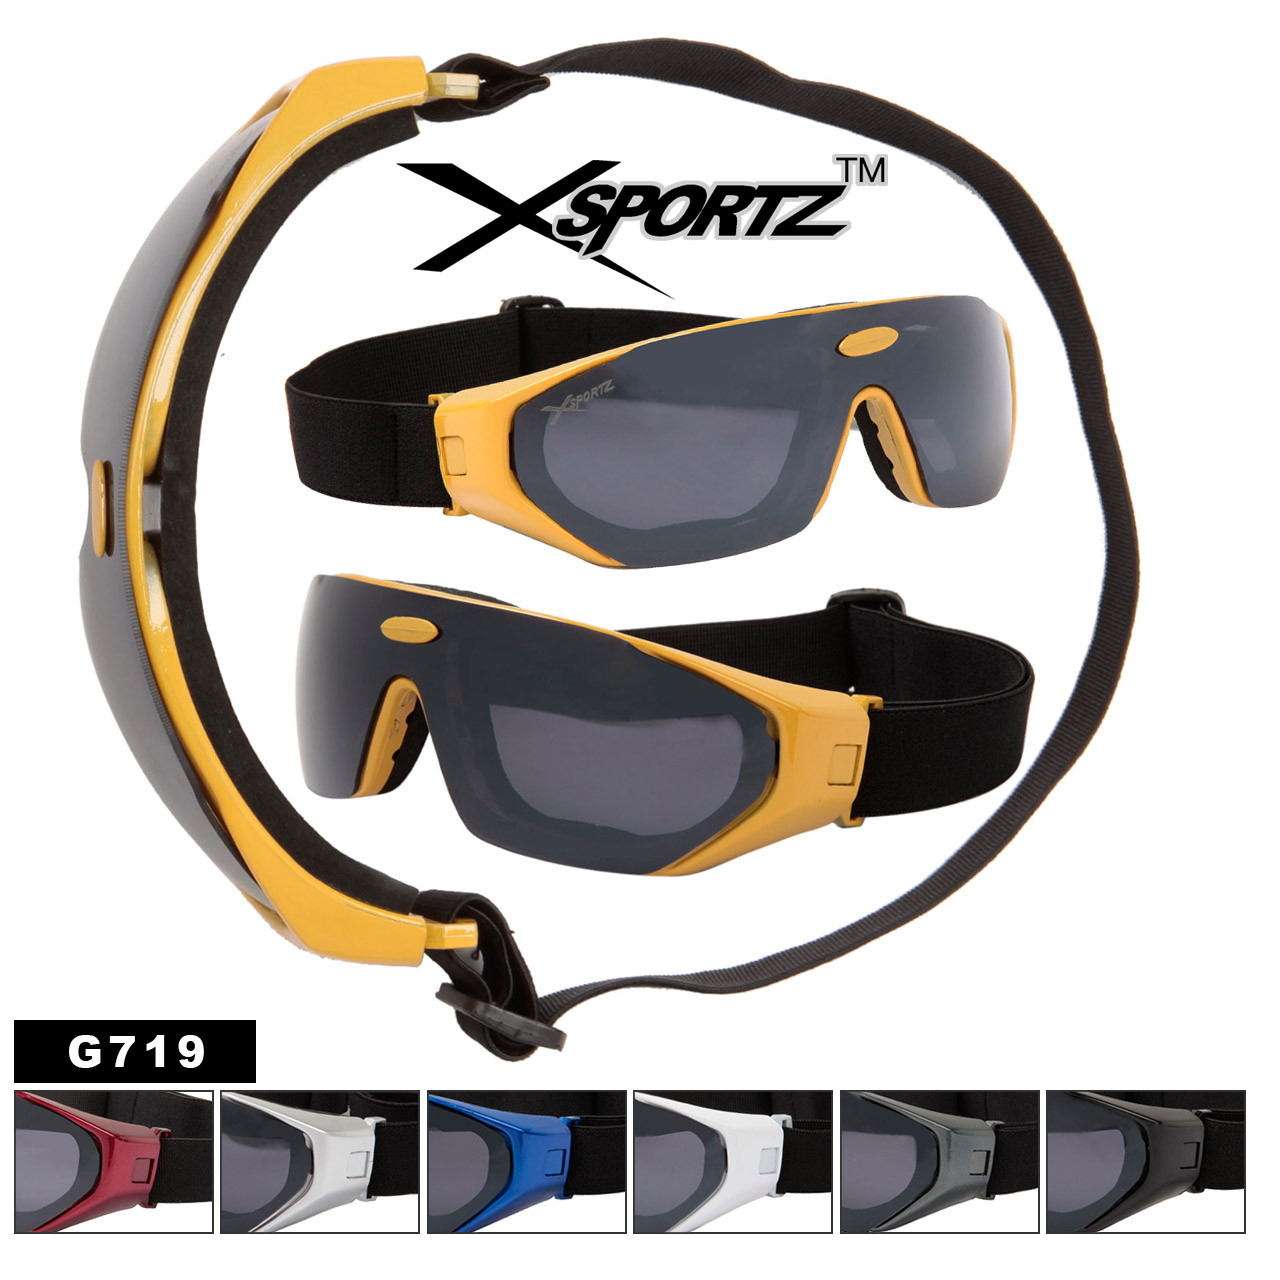 Wholesale Goggles  G719 Xsportz Brand Foam Padded  (Assorted Colors) (12 pcs.)